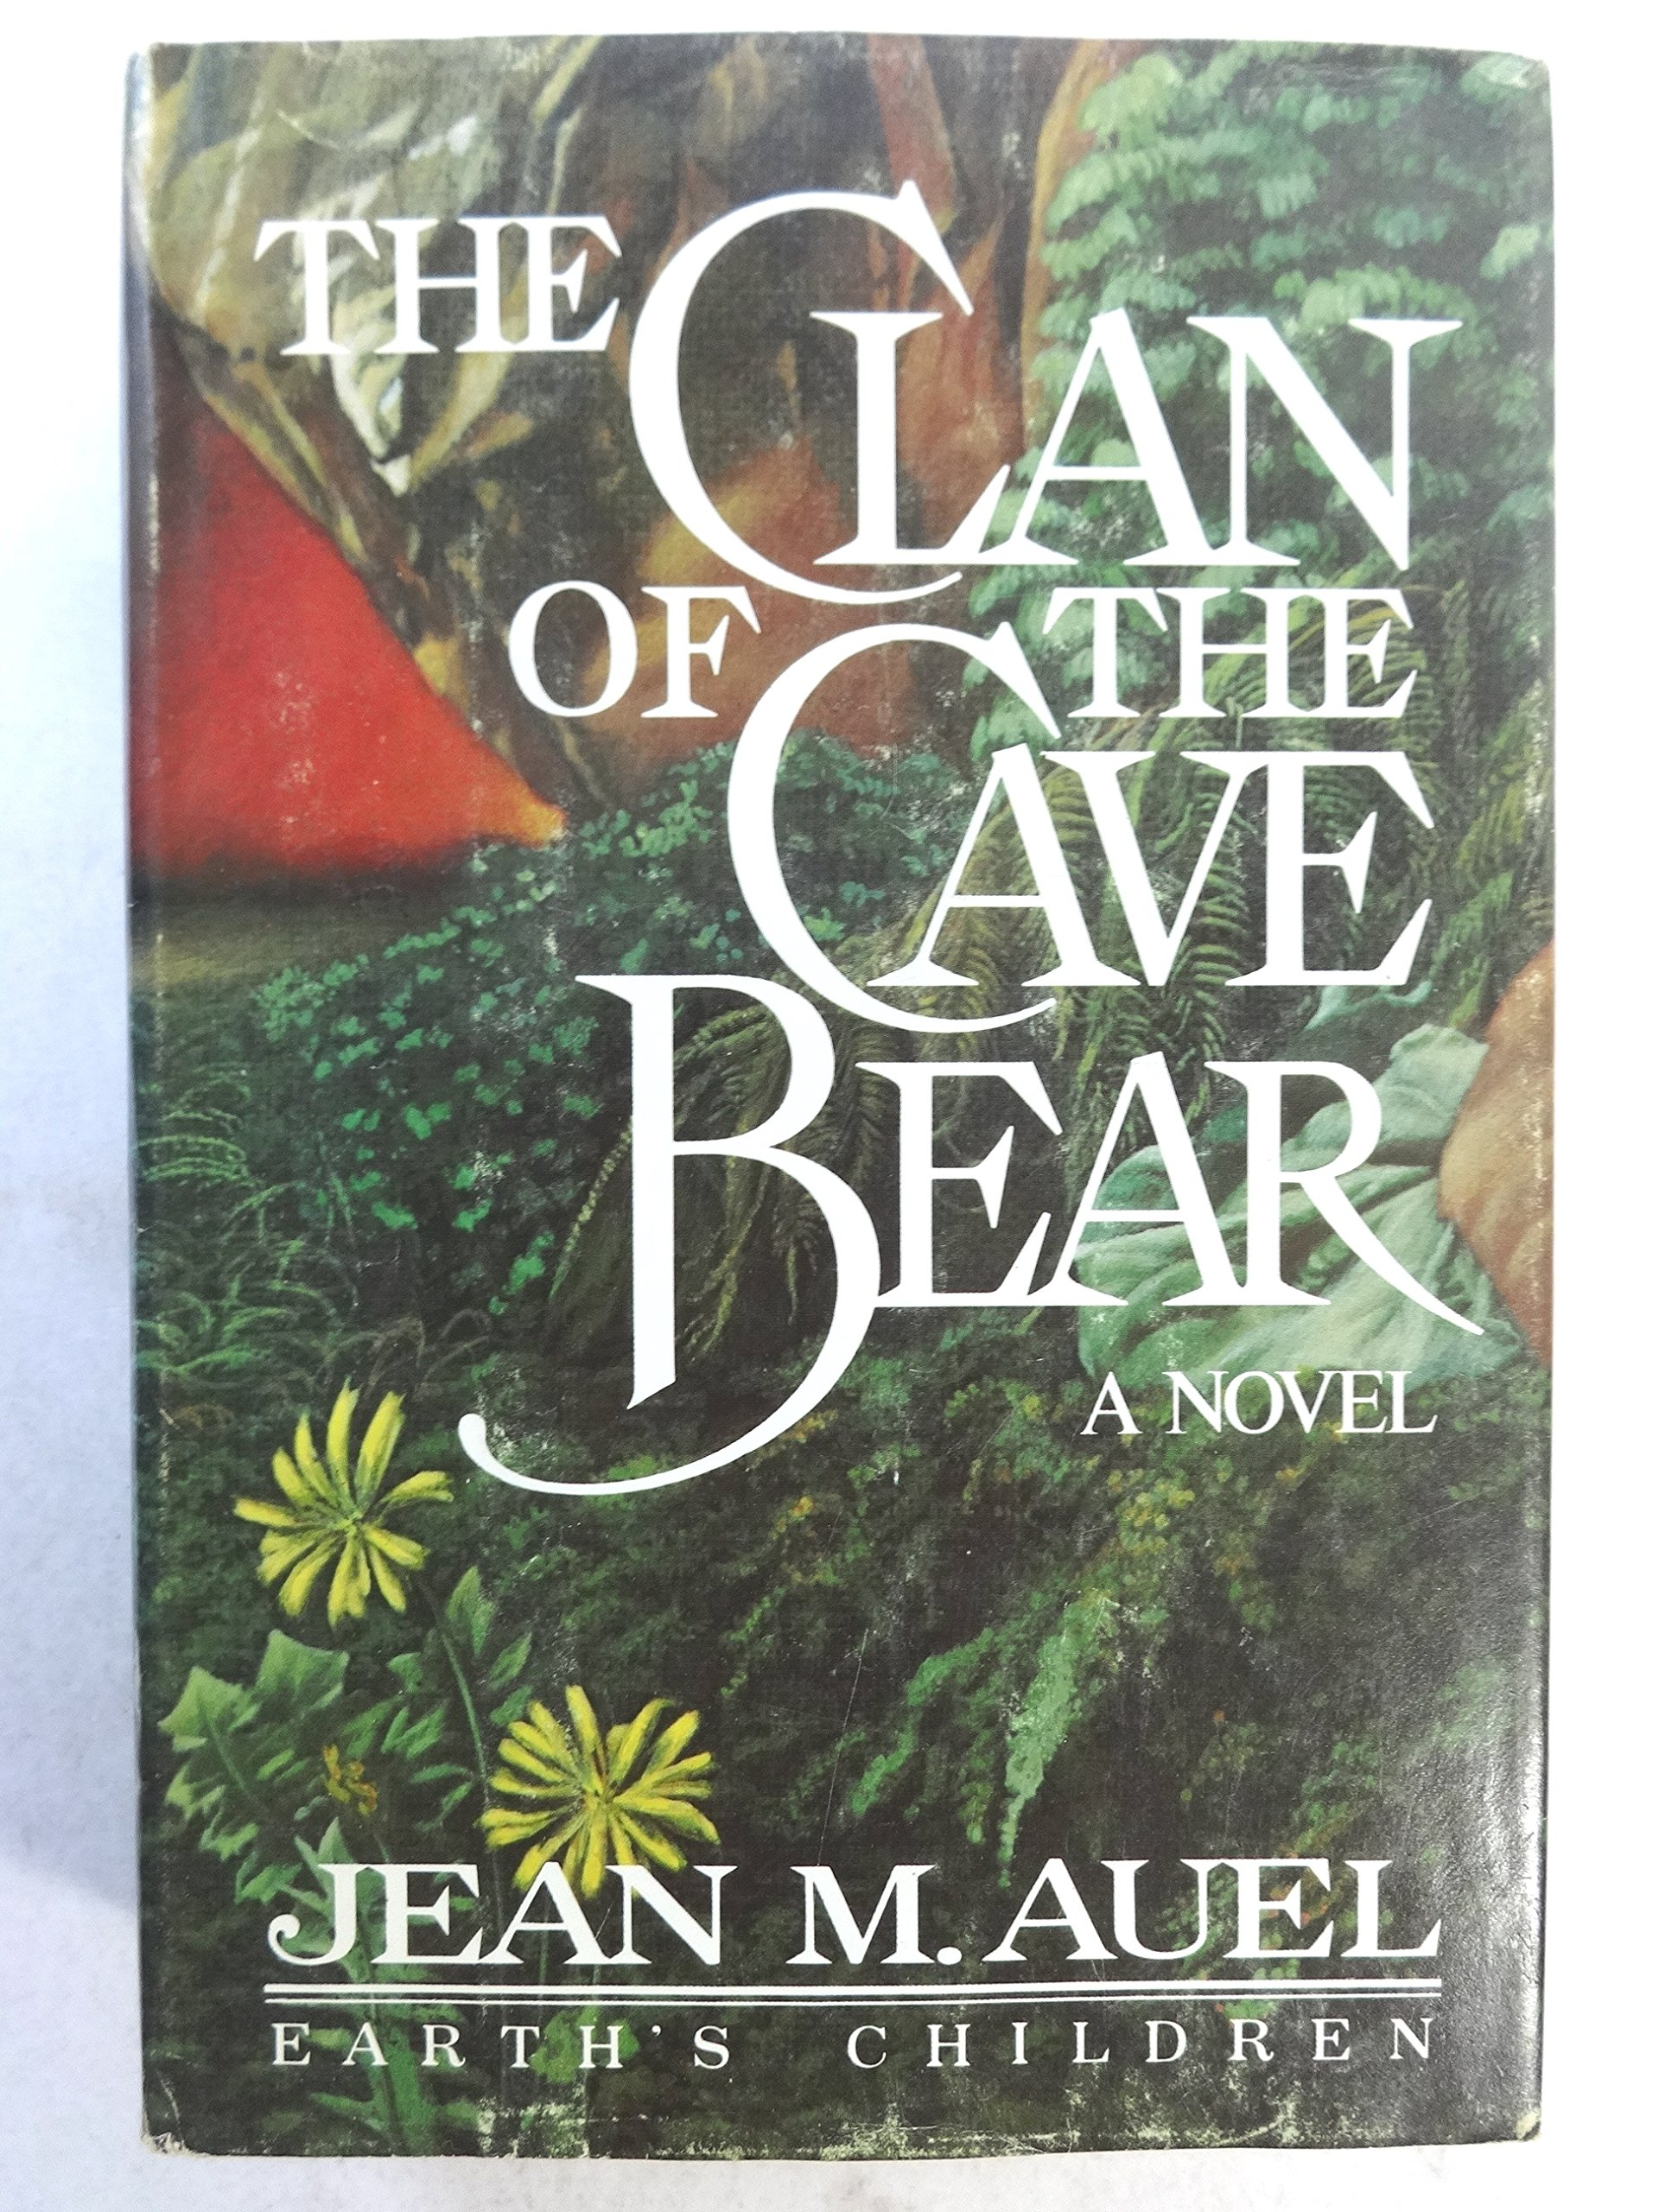 The Clan of the Cave Bear - A Novel (Earth's Children) (Book Club Edition), Jean M. Auel